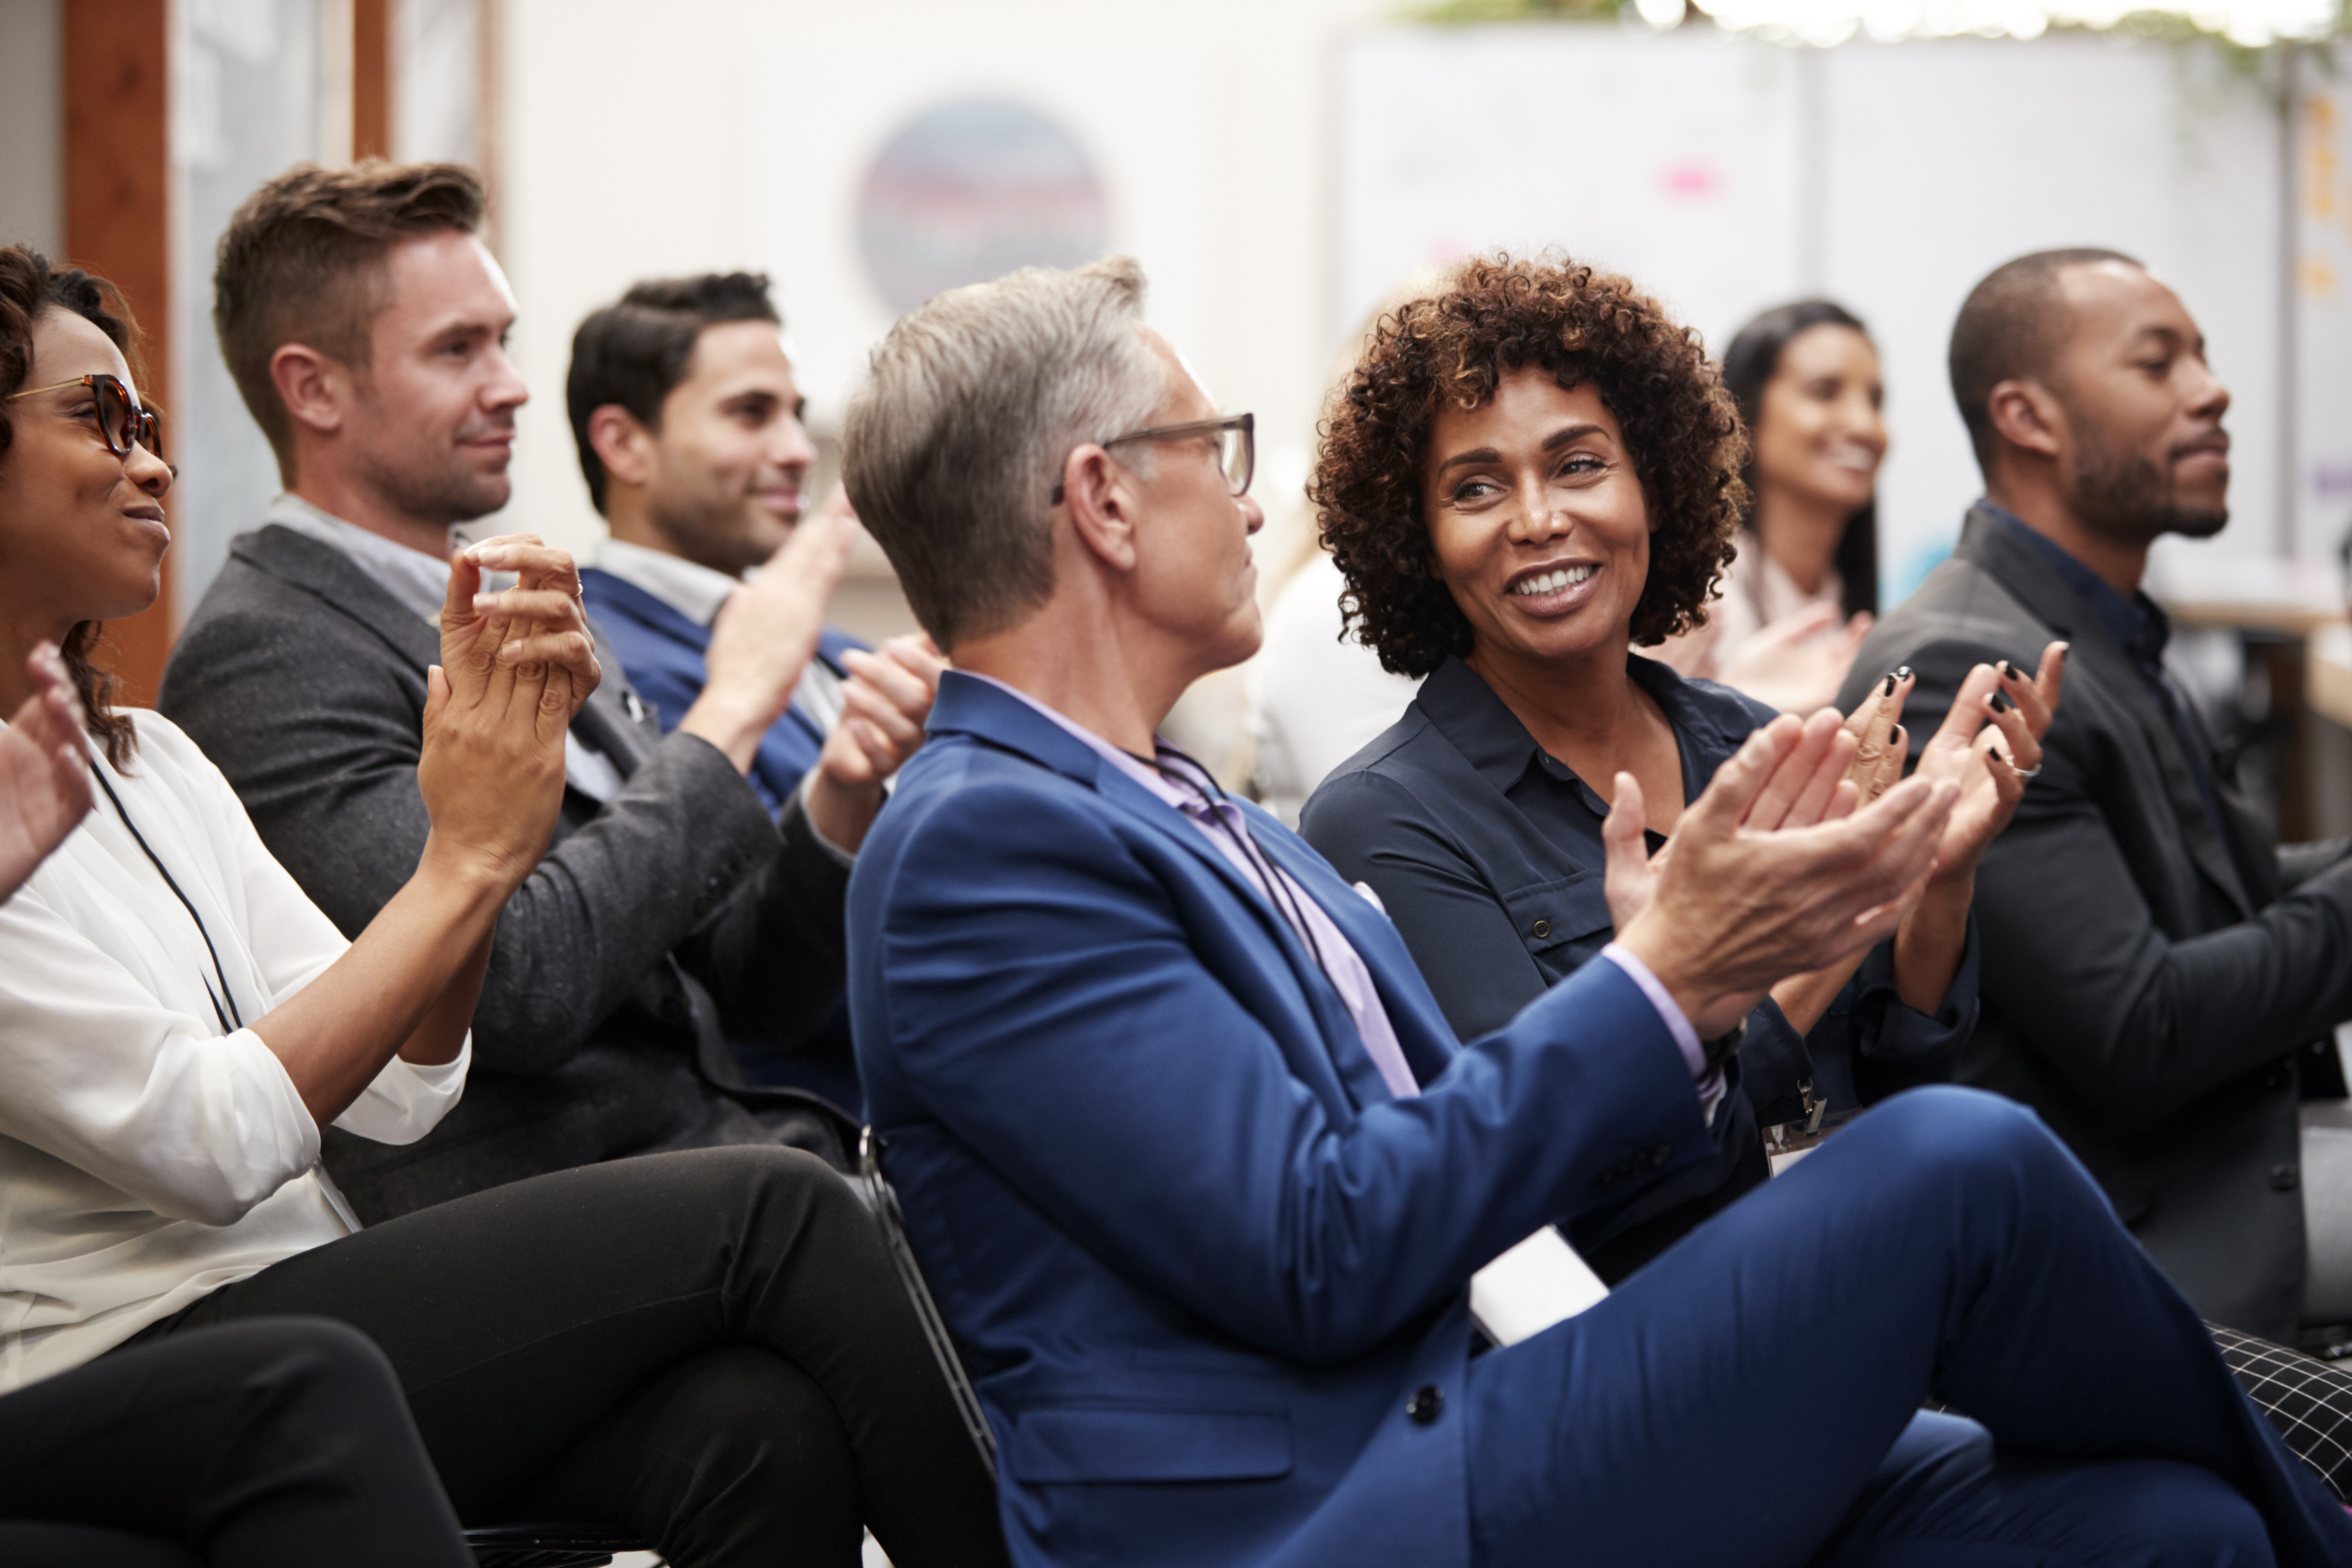 Group Of Businessmen And Businesswomen Applauding Presentation At Conference